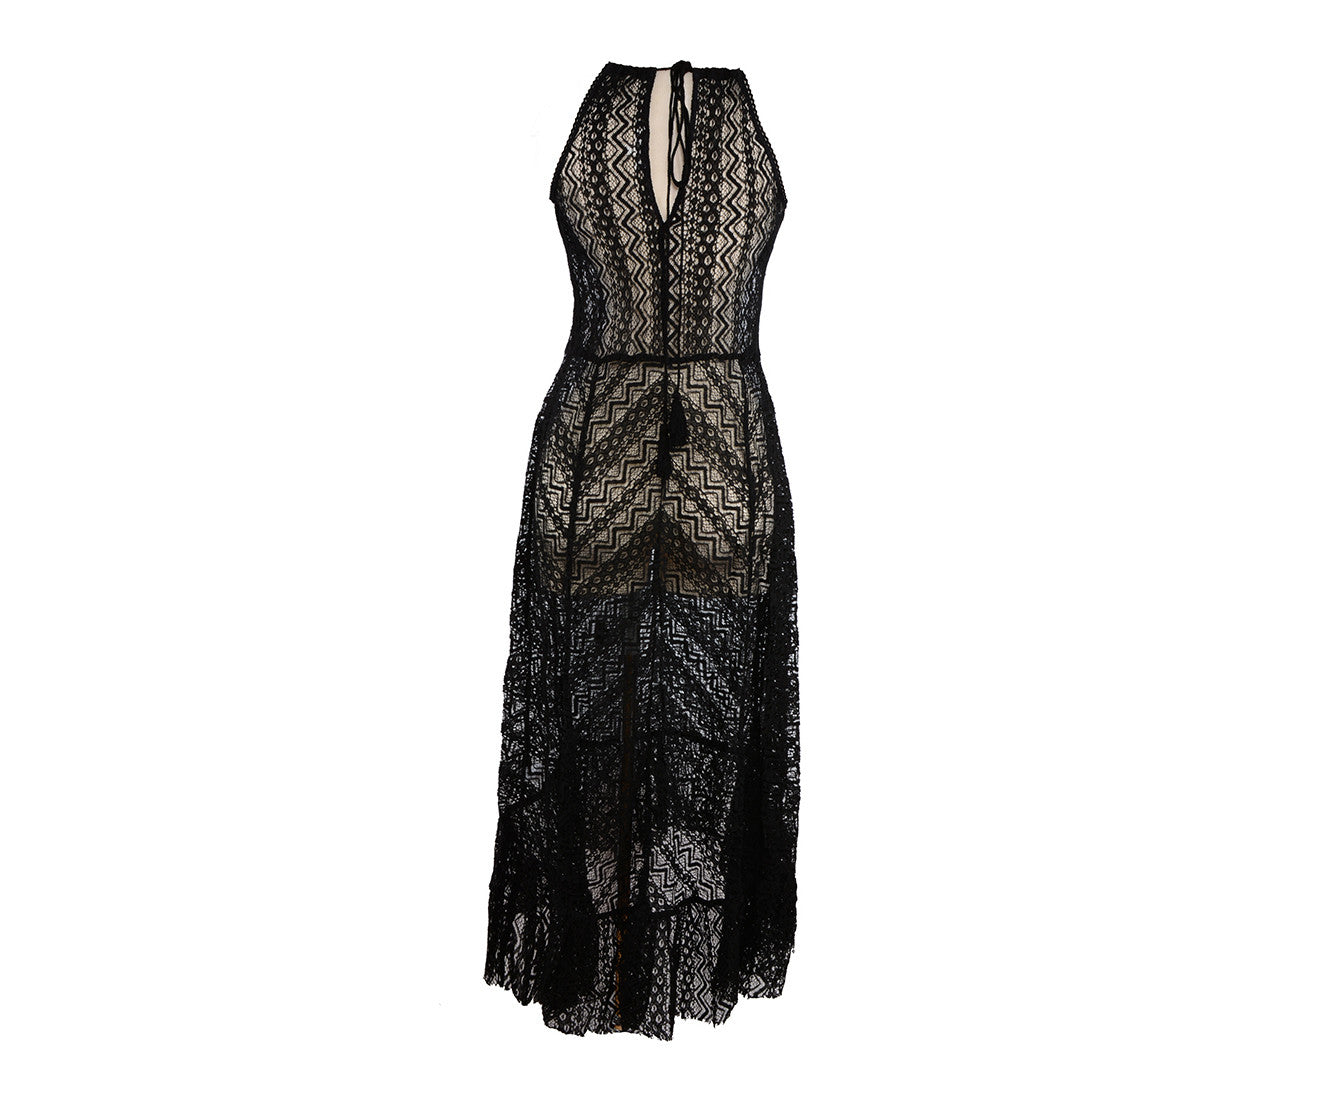 BRONSON LACE COVER UP MAXI